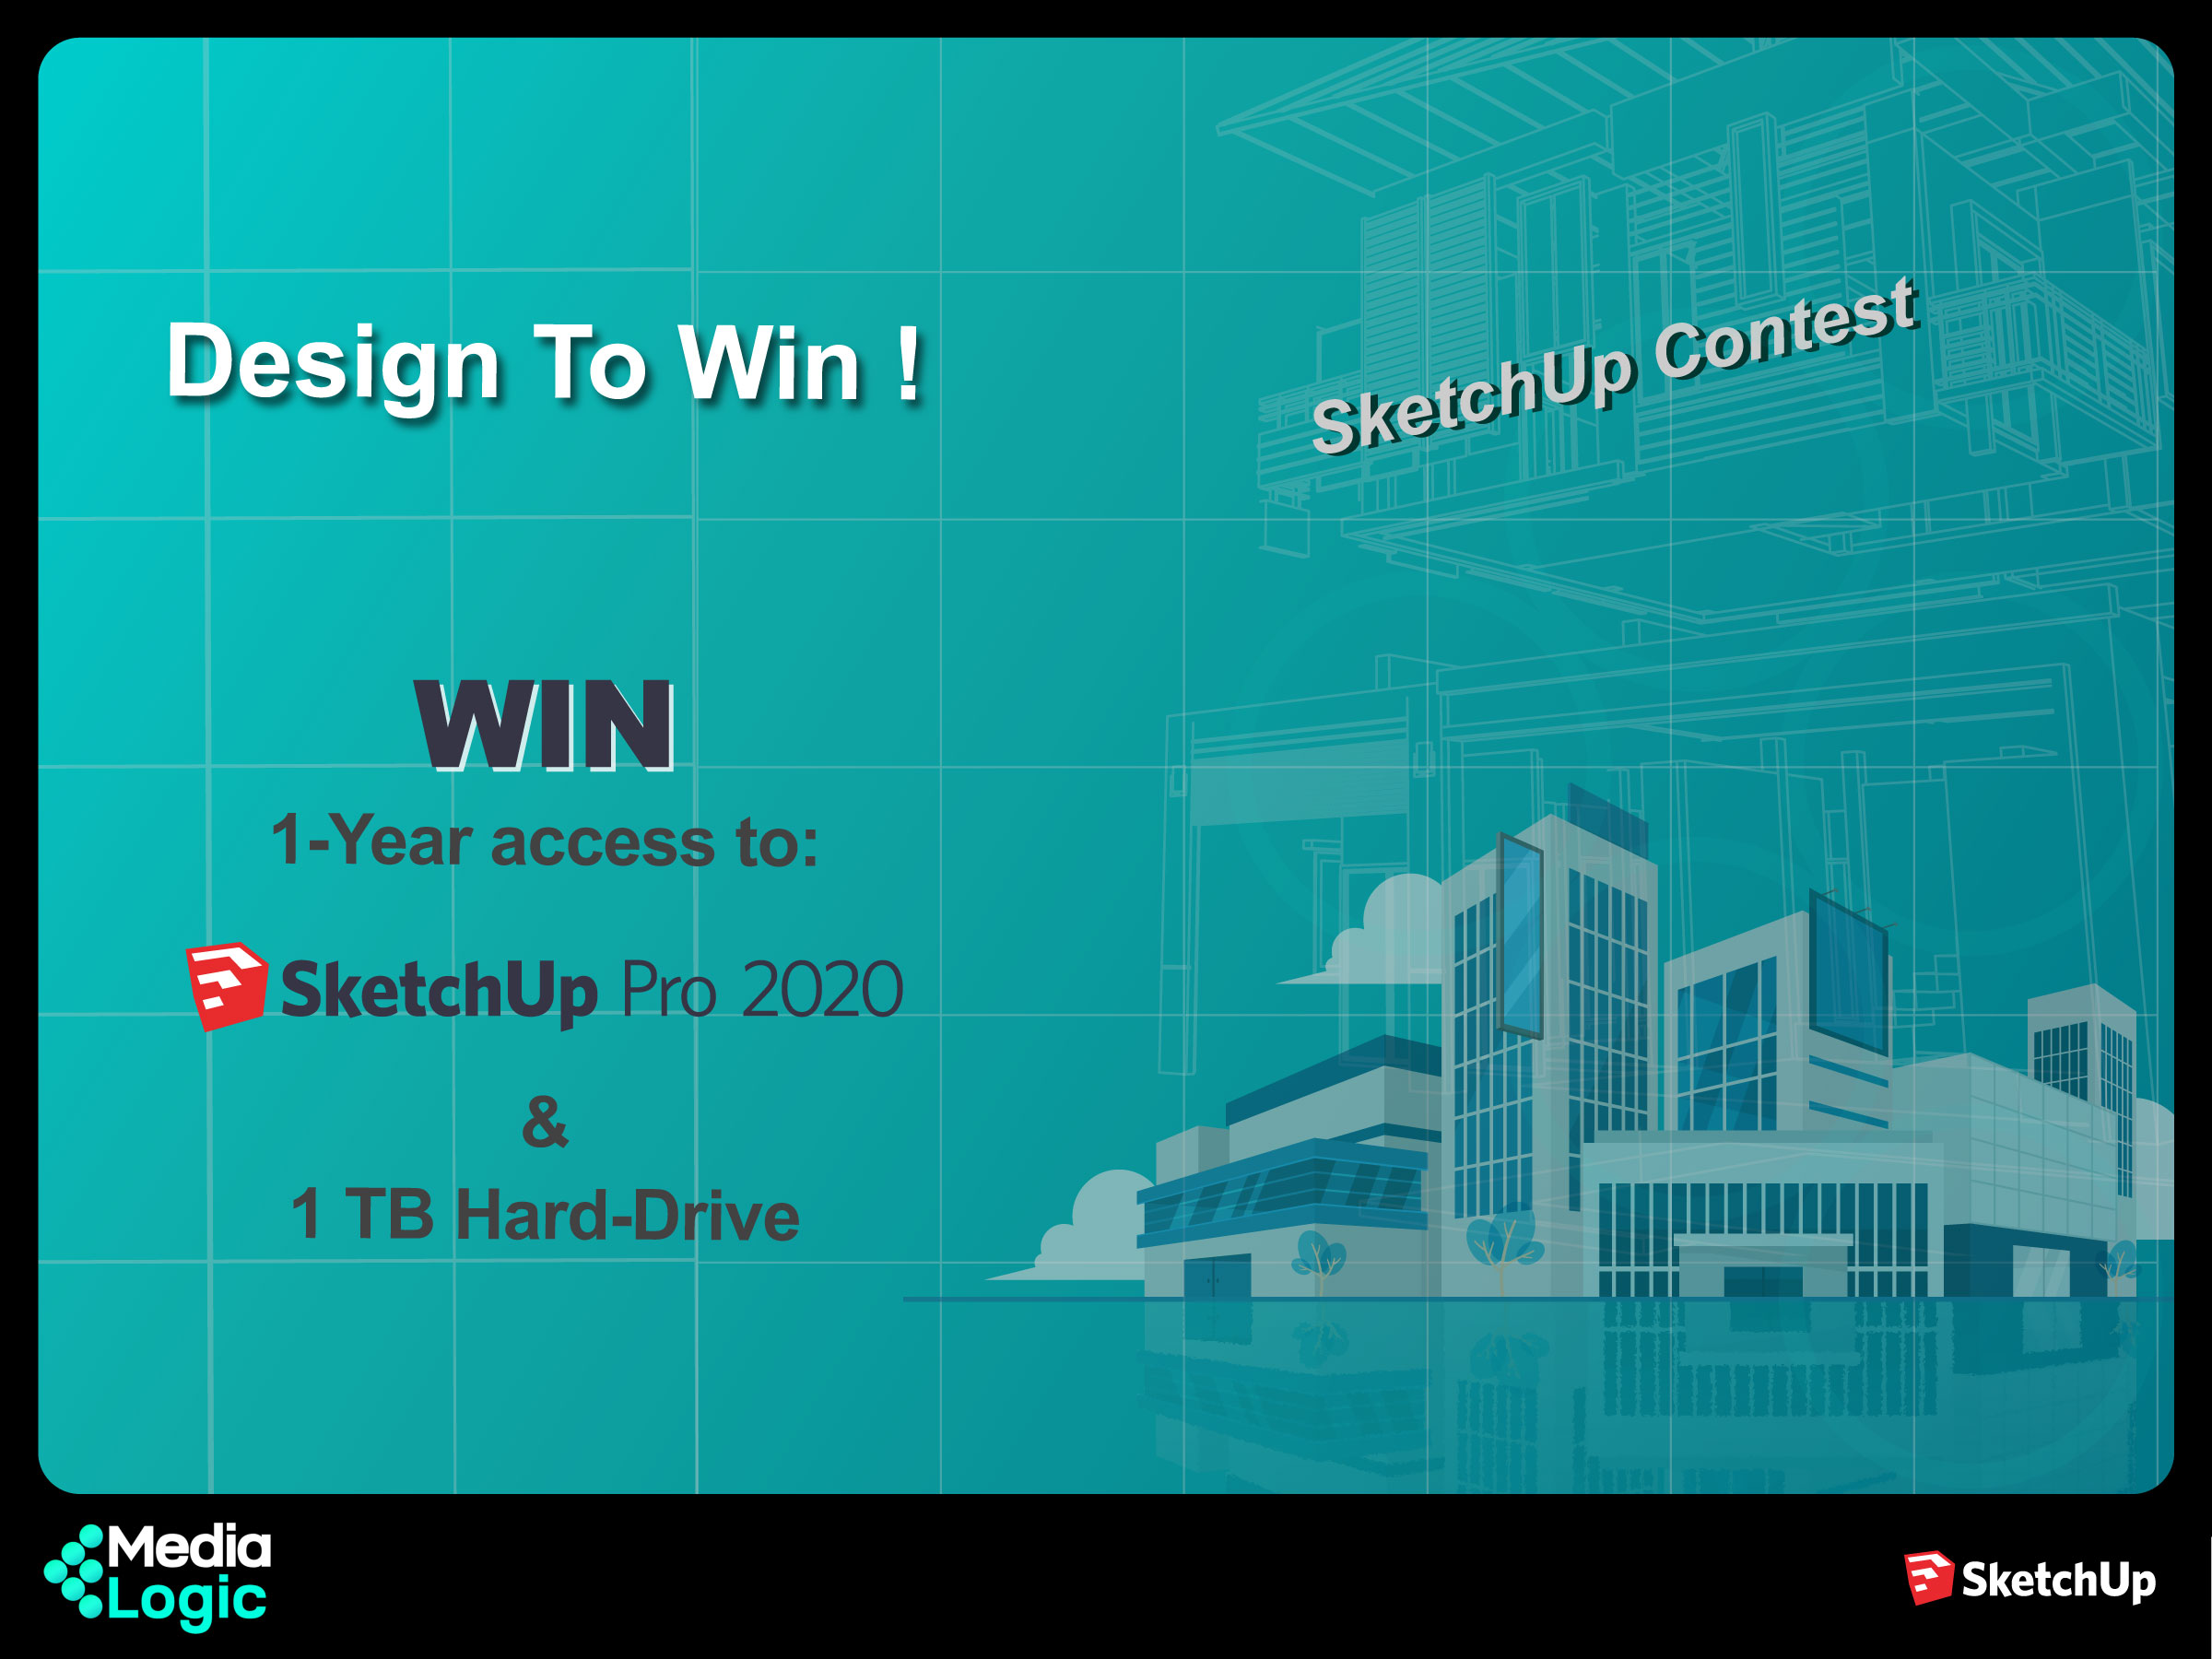 SketchUp Contest - Design to Win !